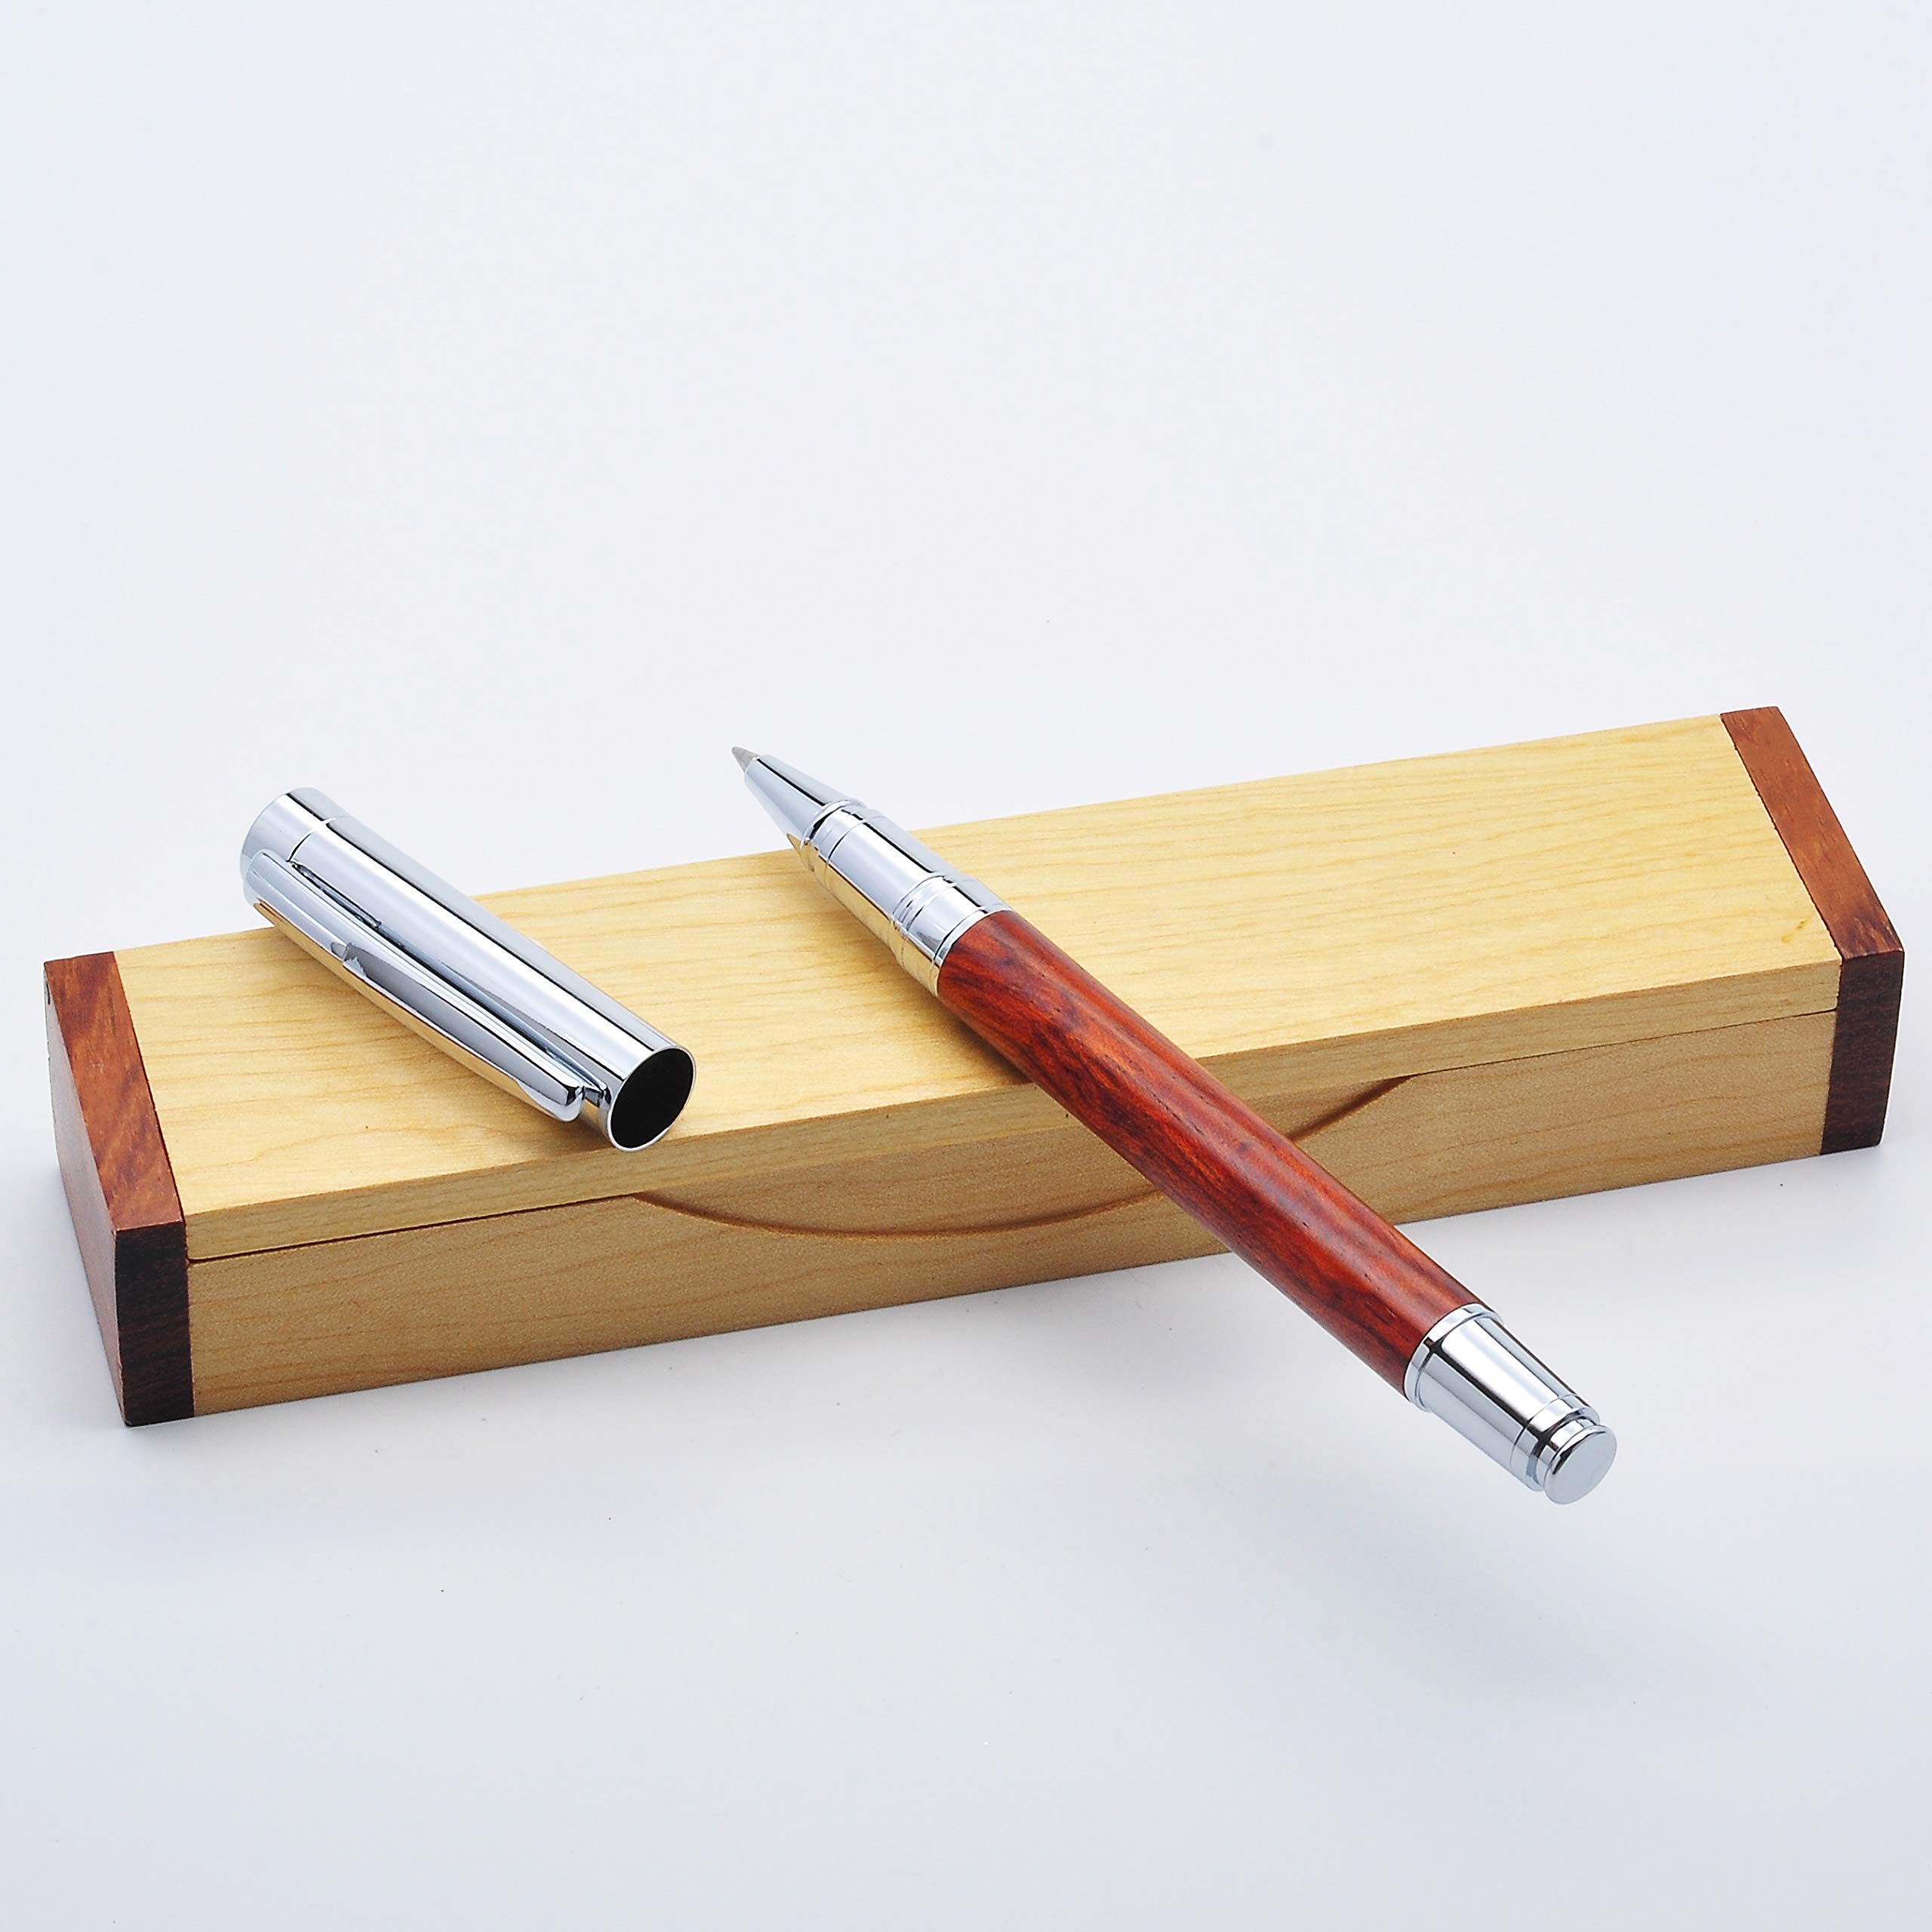 LACHIEVA Rosewood Roller Pen With Elegant Wood Box Pack Germany Schneider Refill- Perfect for Gifts